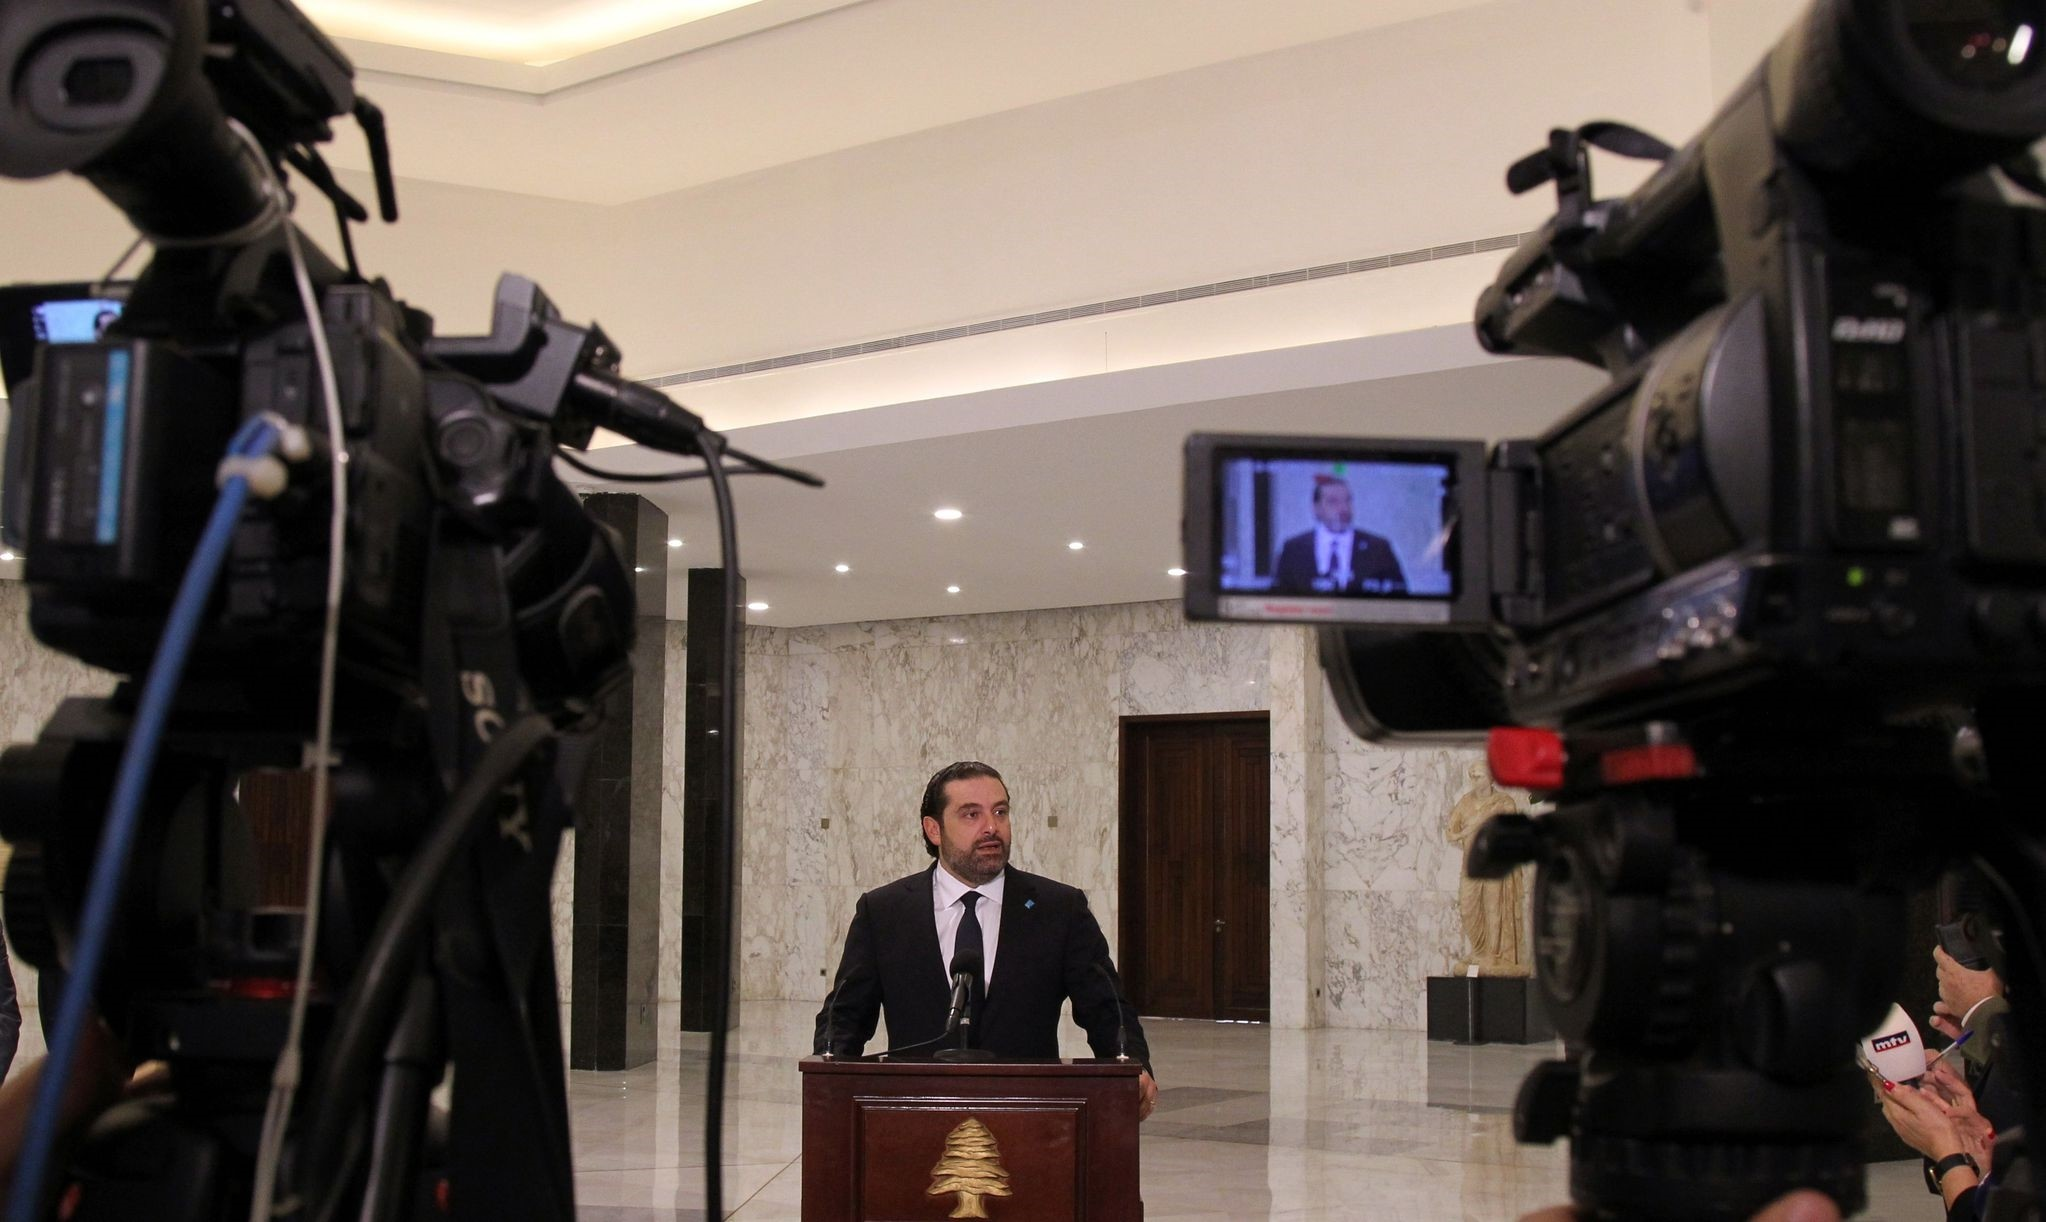 Lebanon's new Prime Minister Saad Hariri speaks to journalists following his nomination at the presidential palace in Baabda, near Beirut, on November 3, 2016. (AFP Photo)